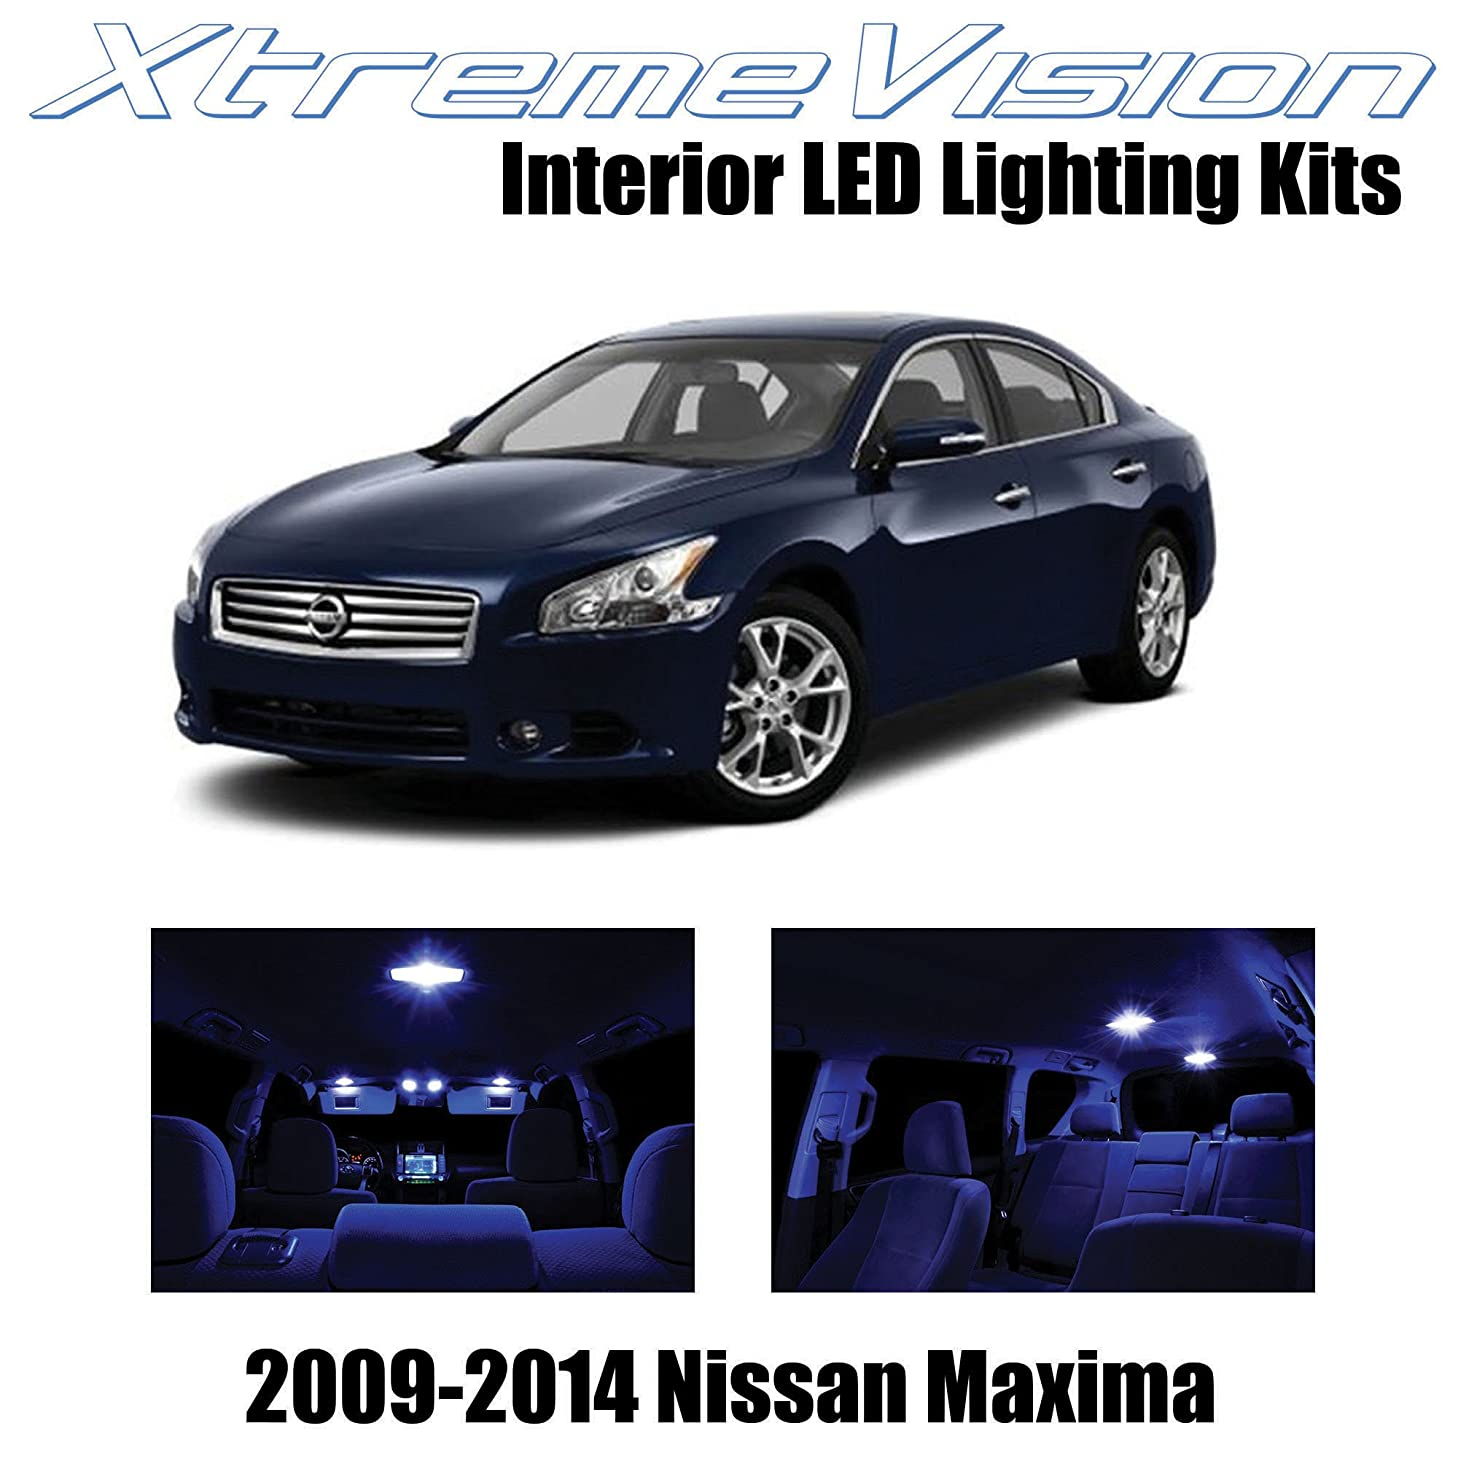 XtremeVision Interior LED for Nissan Maxima 2009-2014 (14 Pieces) Blue Interior LED Kit + Installation Tool Tool